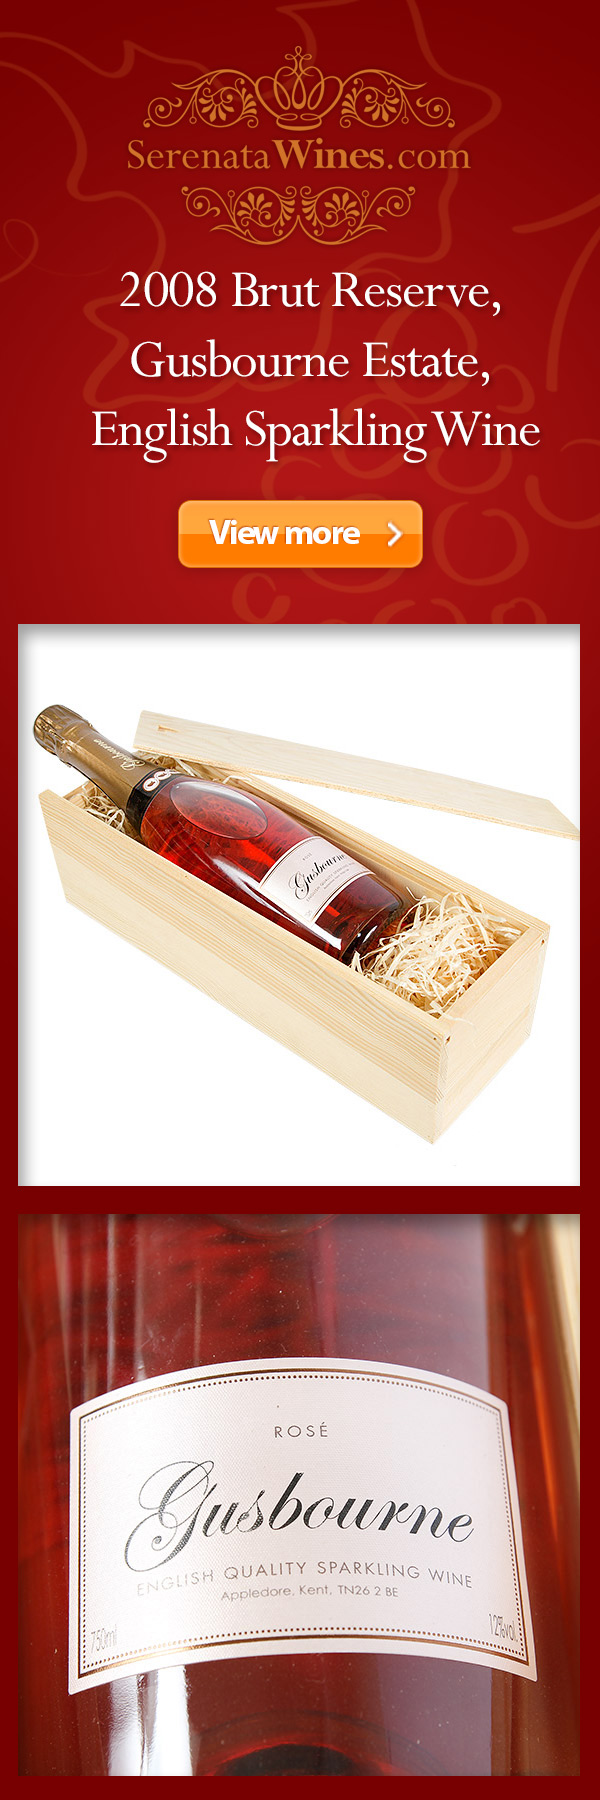 2008 Brut Reserve Gusbourne Estate Rose English Sparkling Wine Wine Gifts Sparkling Wine Italian White Wine